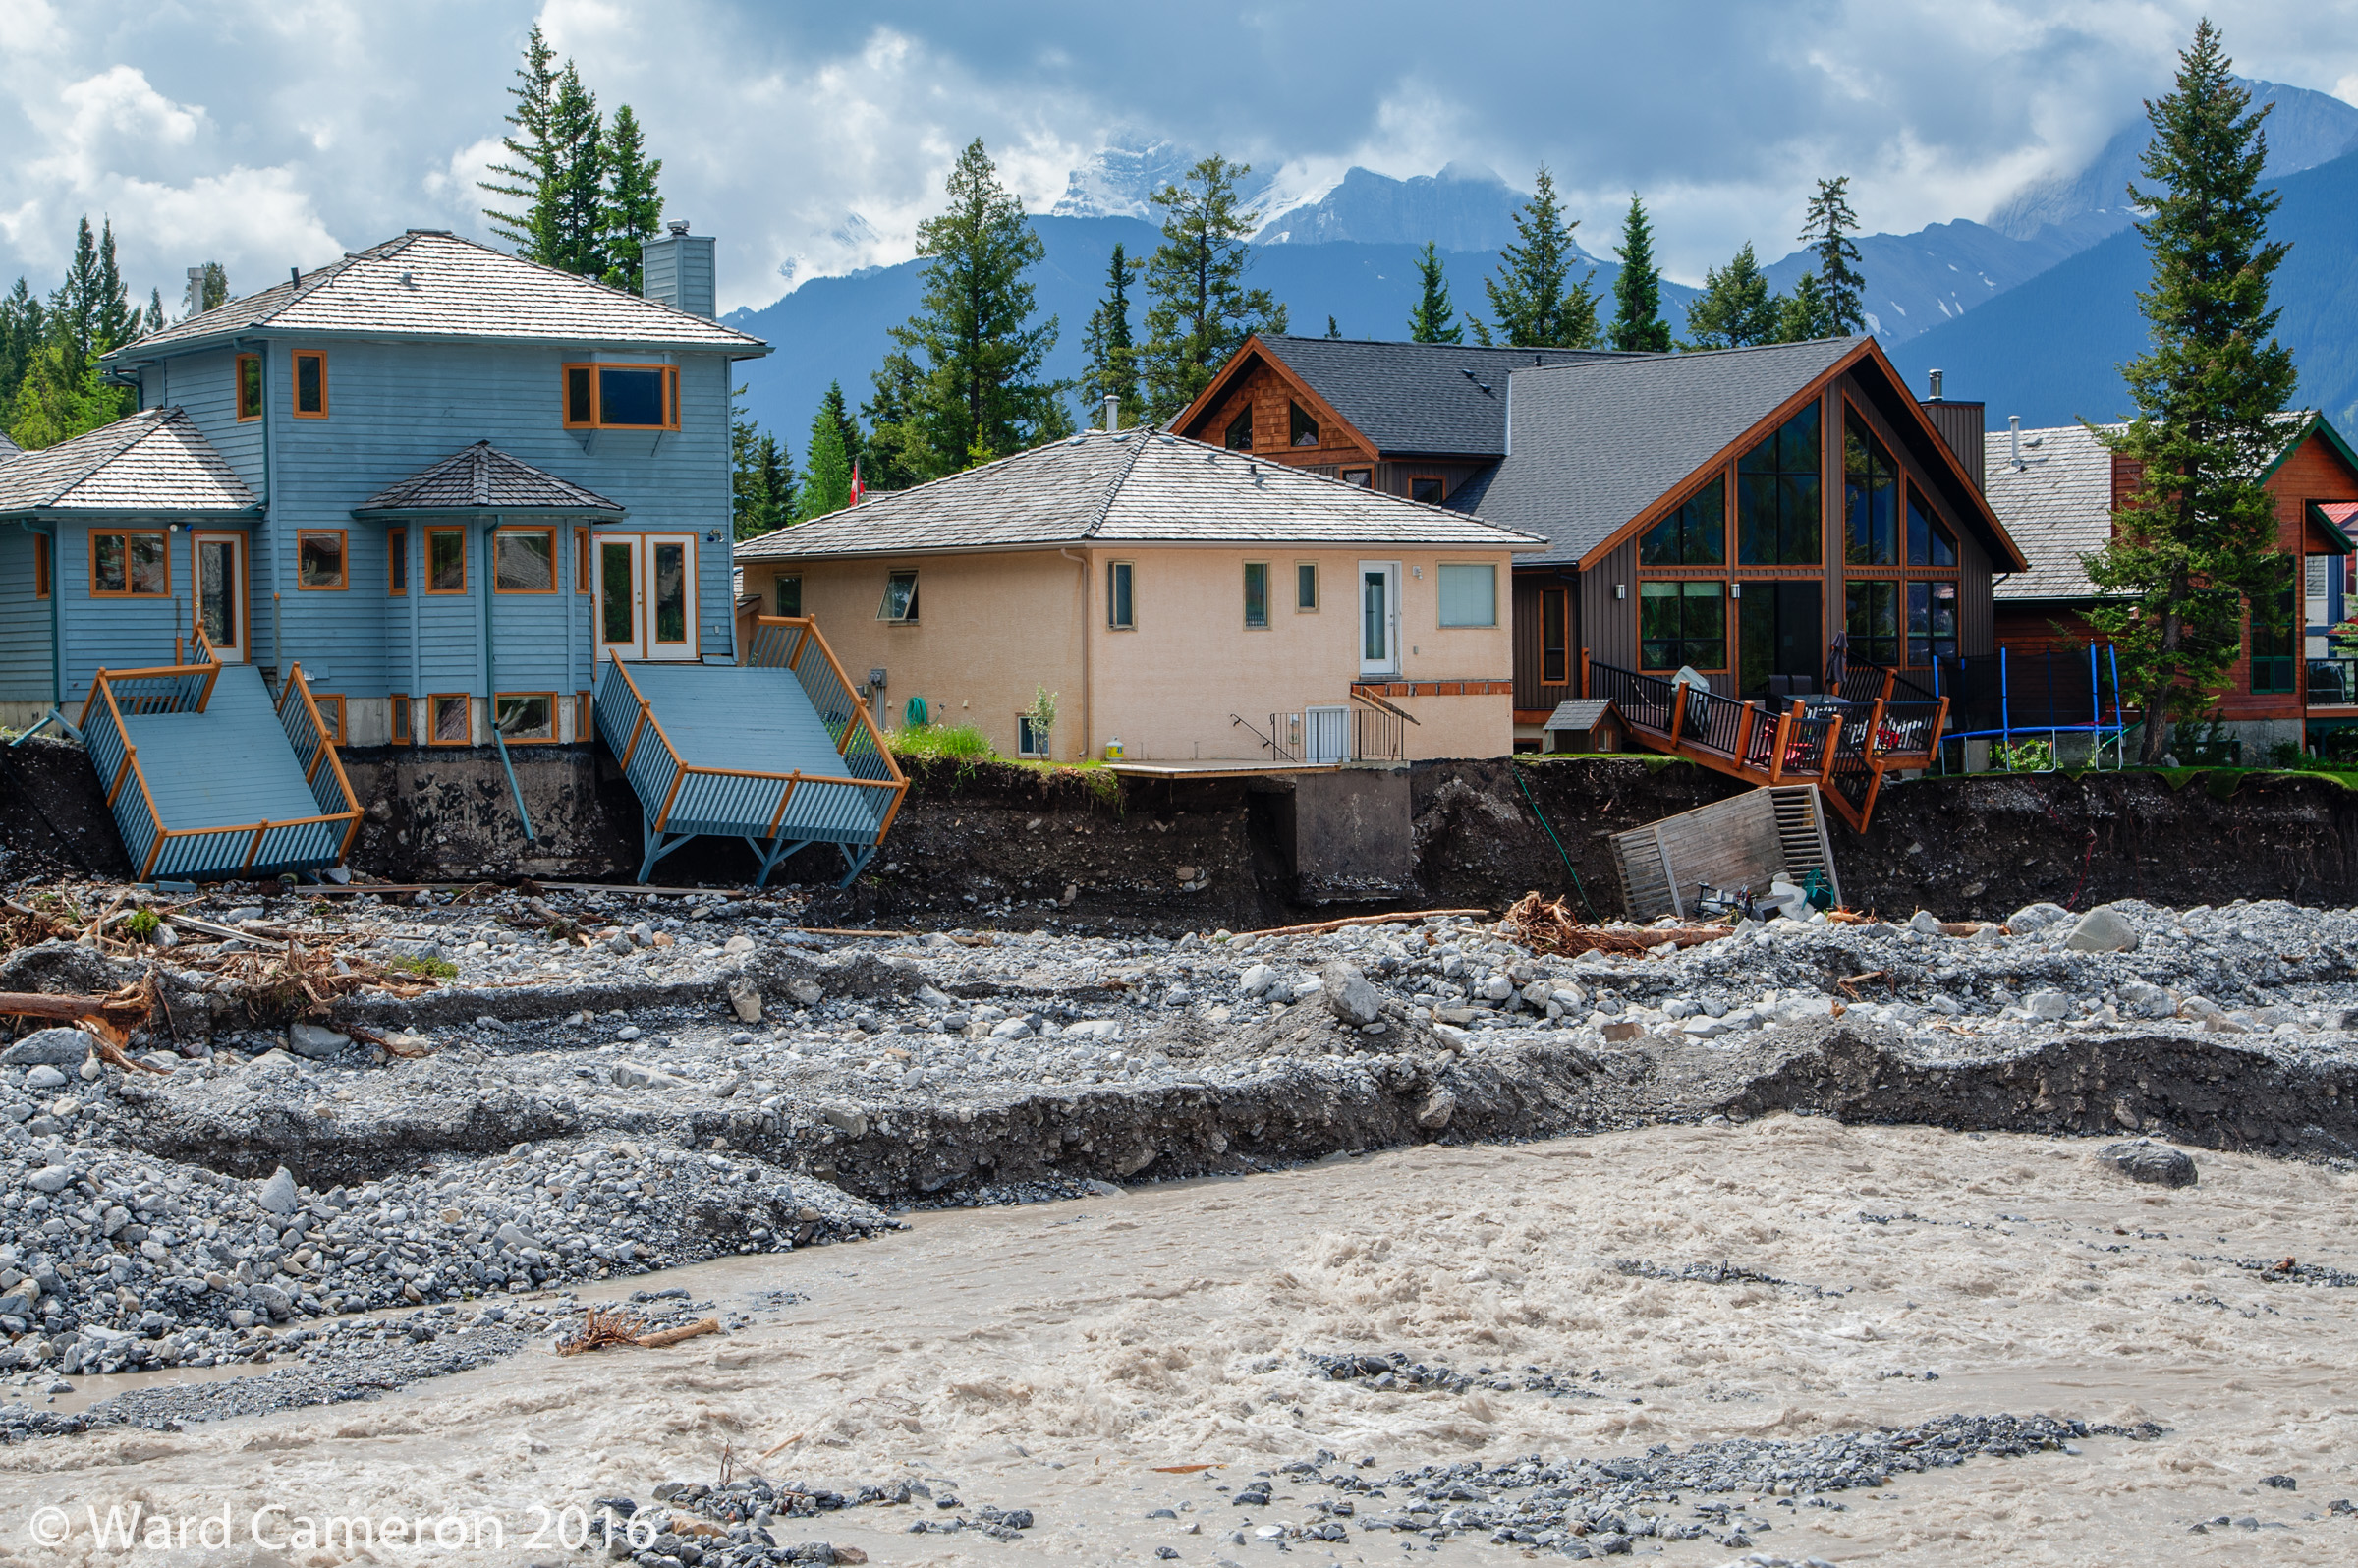 Damage to houses along Cougar Creek in Canmore in 2013